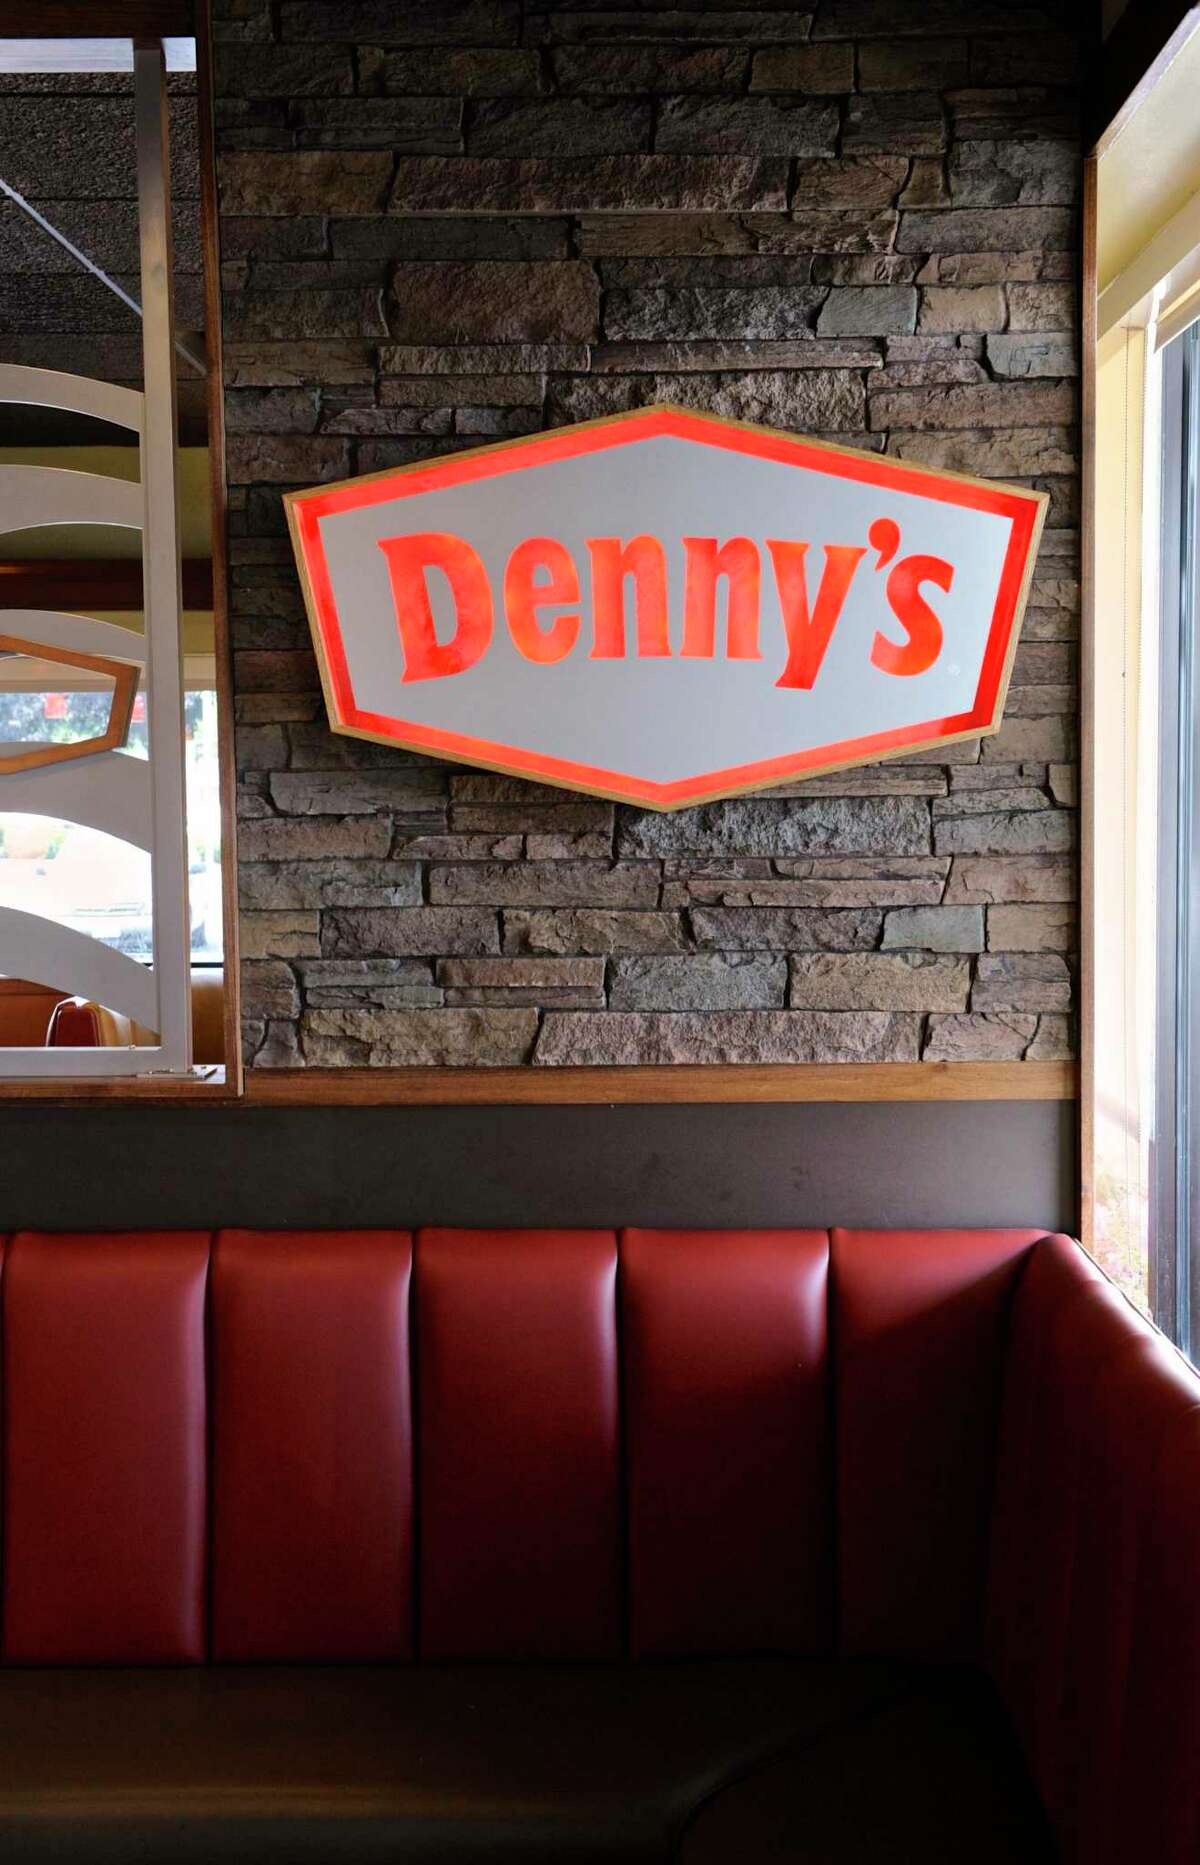 A Denny's franchisee in Houston failed to pay minimum wage when it deducted the cost of uniforms from its employees' paychecks, according to a Tuesday news release from the U.S. Department of Labor.